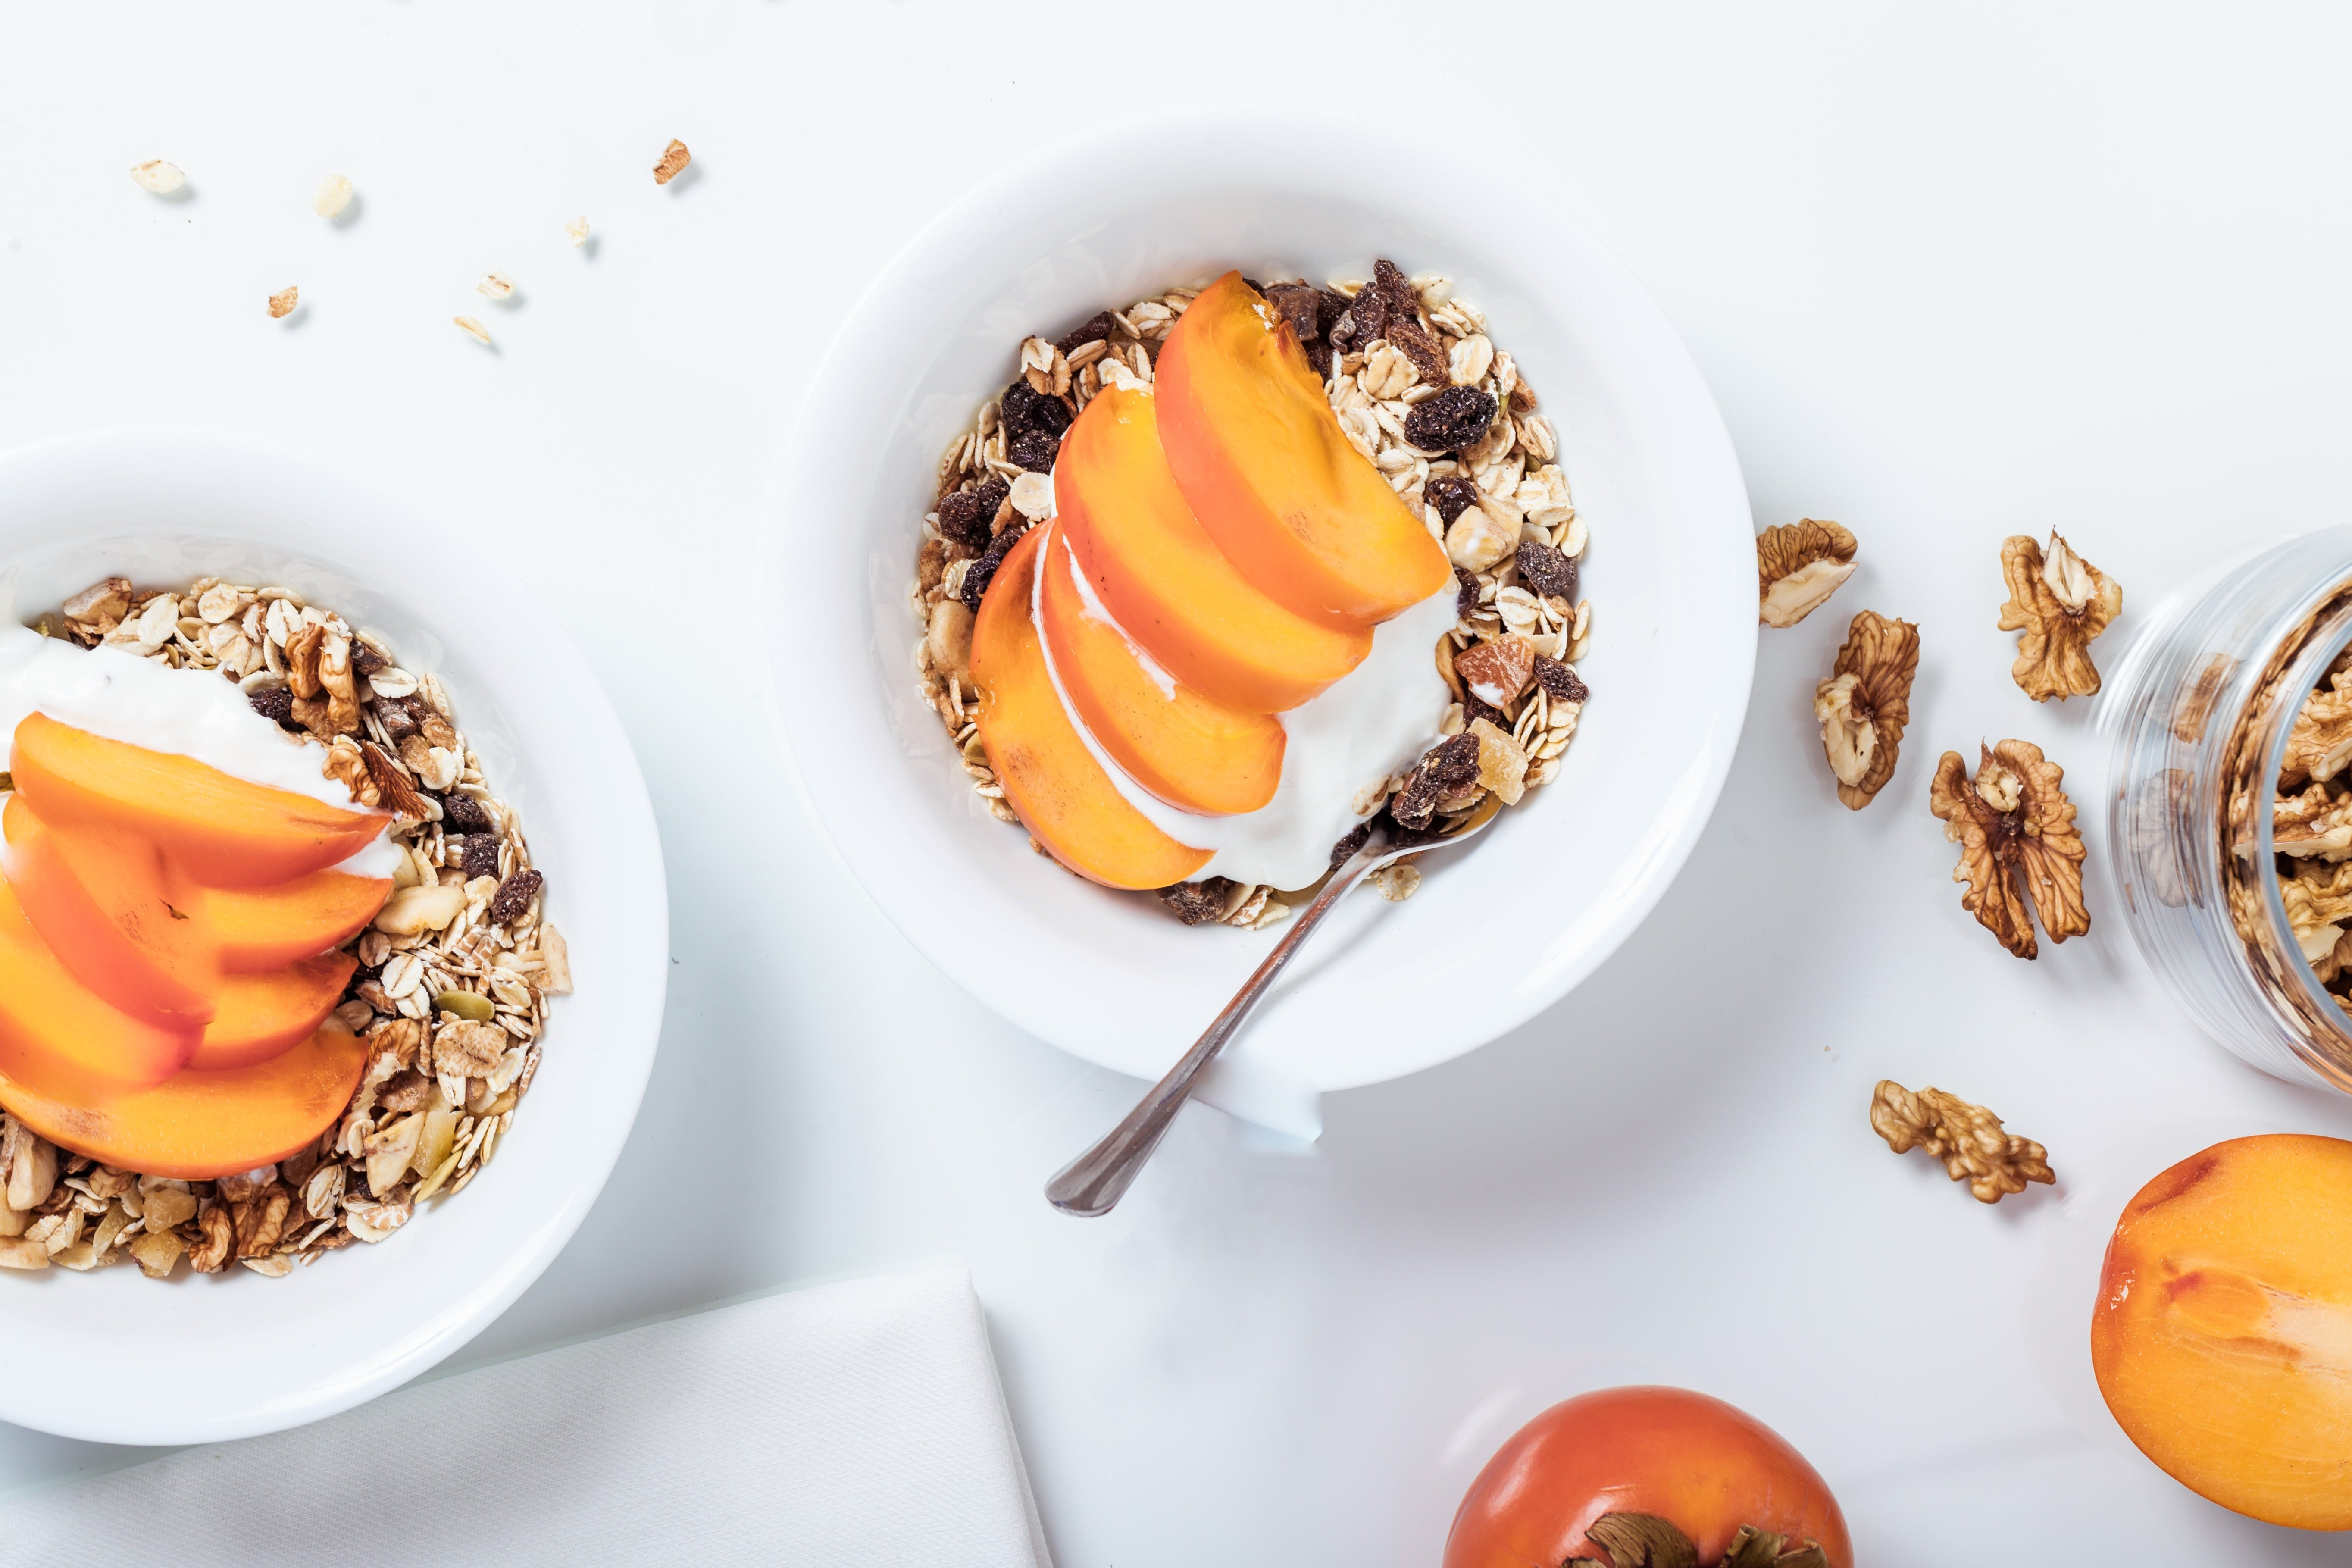 Two bowls with musli and fruit placed in a inspiring way